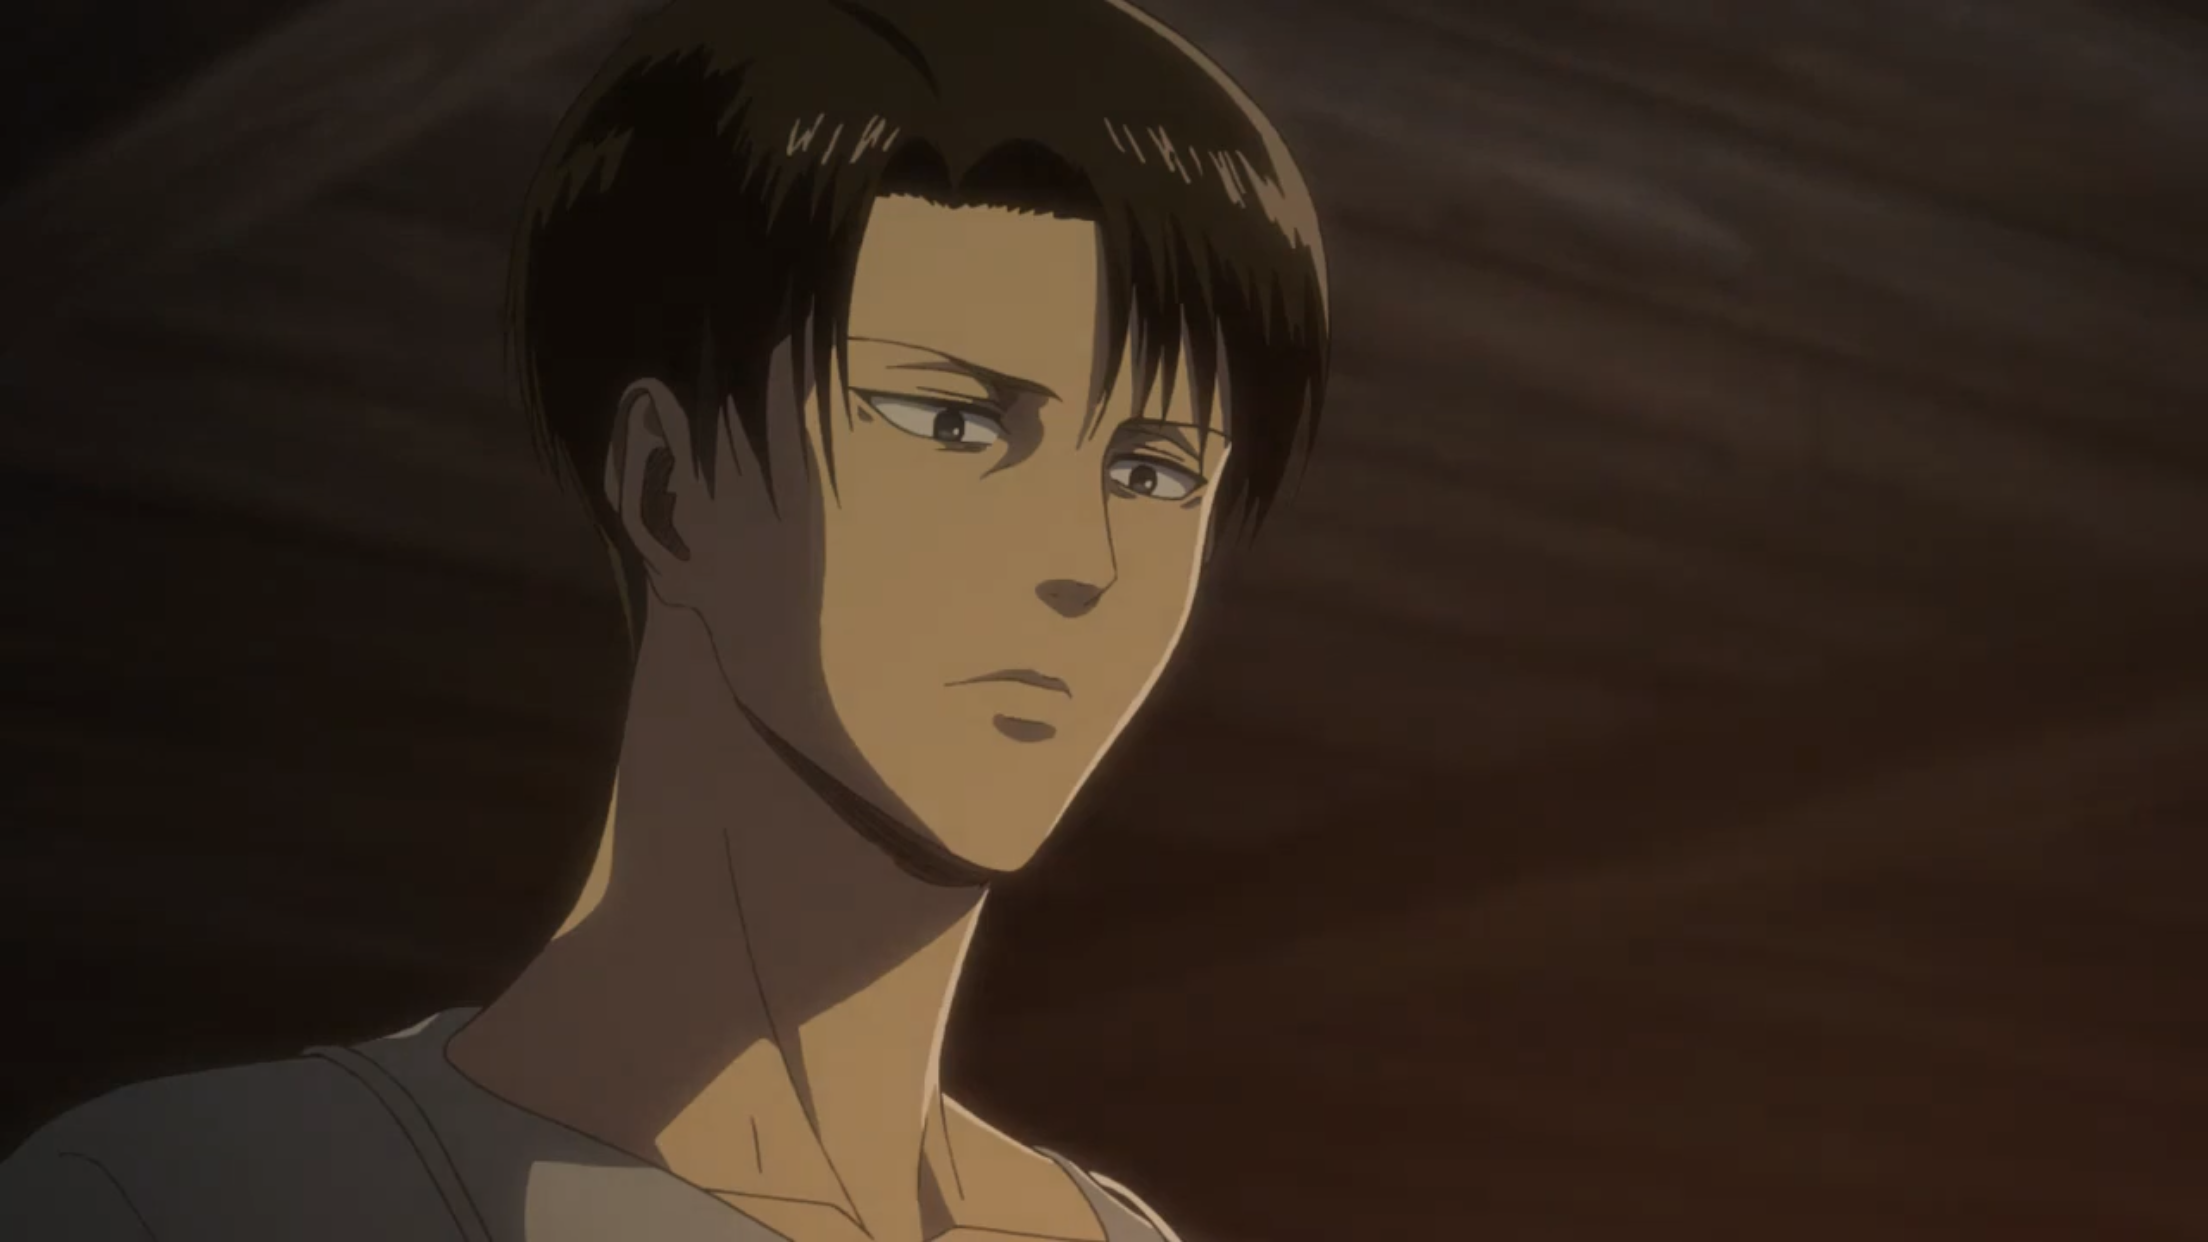 Pin By Puppykitty Supremacy On Anime Levi Ackerman Attack On Titan Levi Attack On Titan